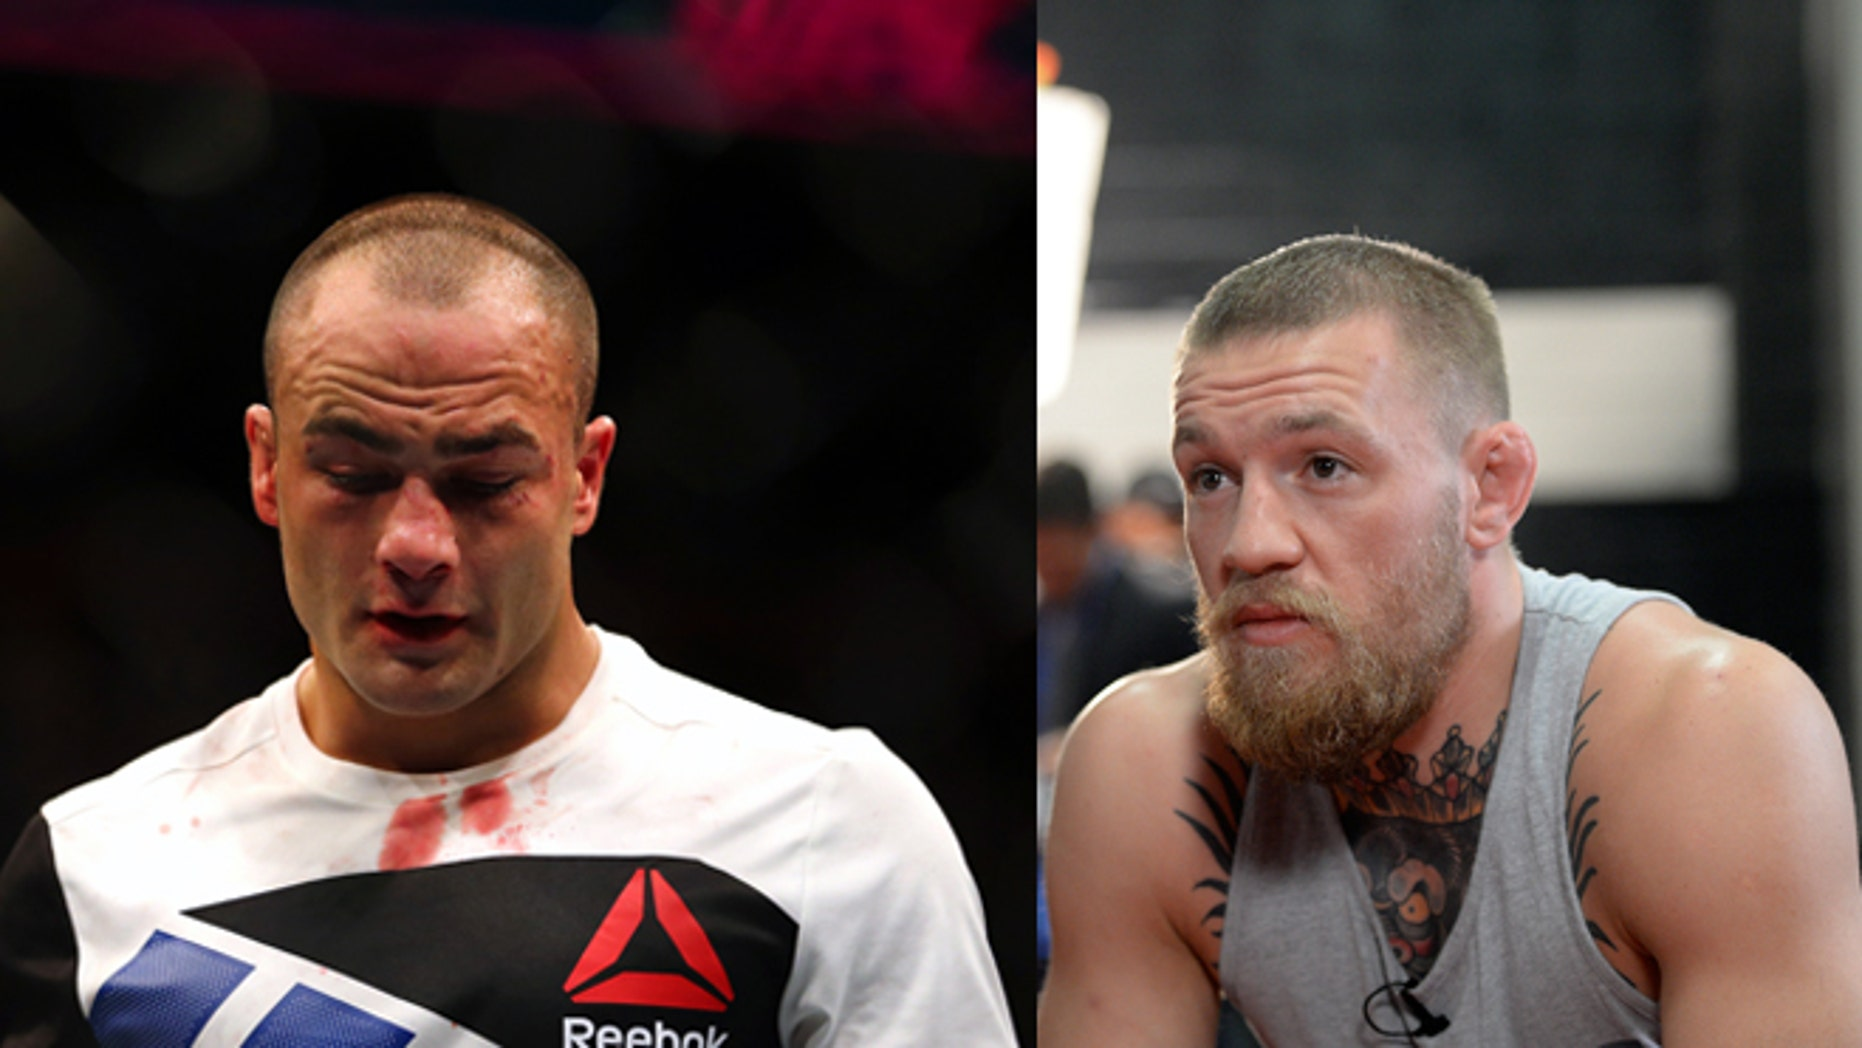 Eddie Alvarez (left) and Conor McGregor. (Photos: Getty Images)